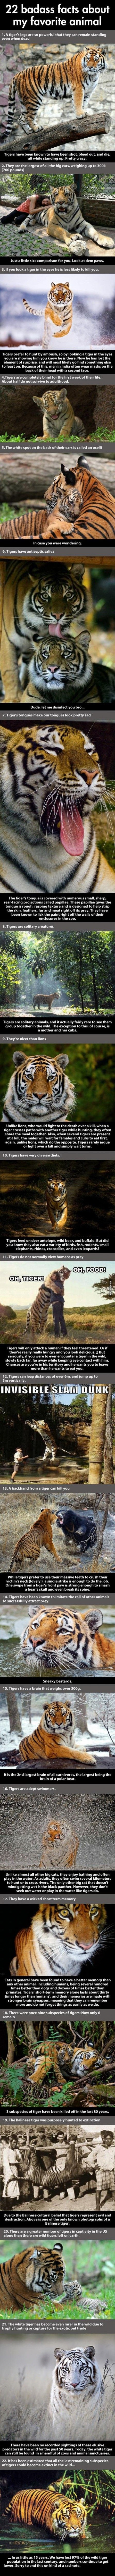 best be a tiger images on pinterest missouri tigers colleges